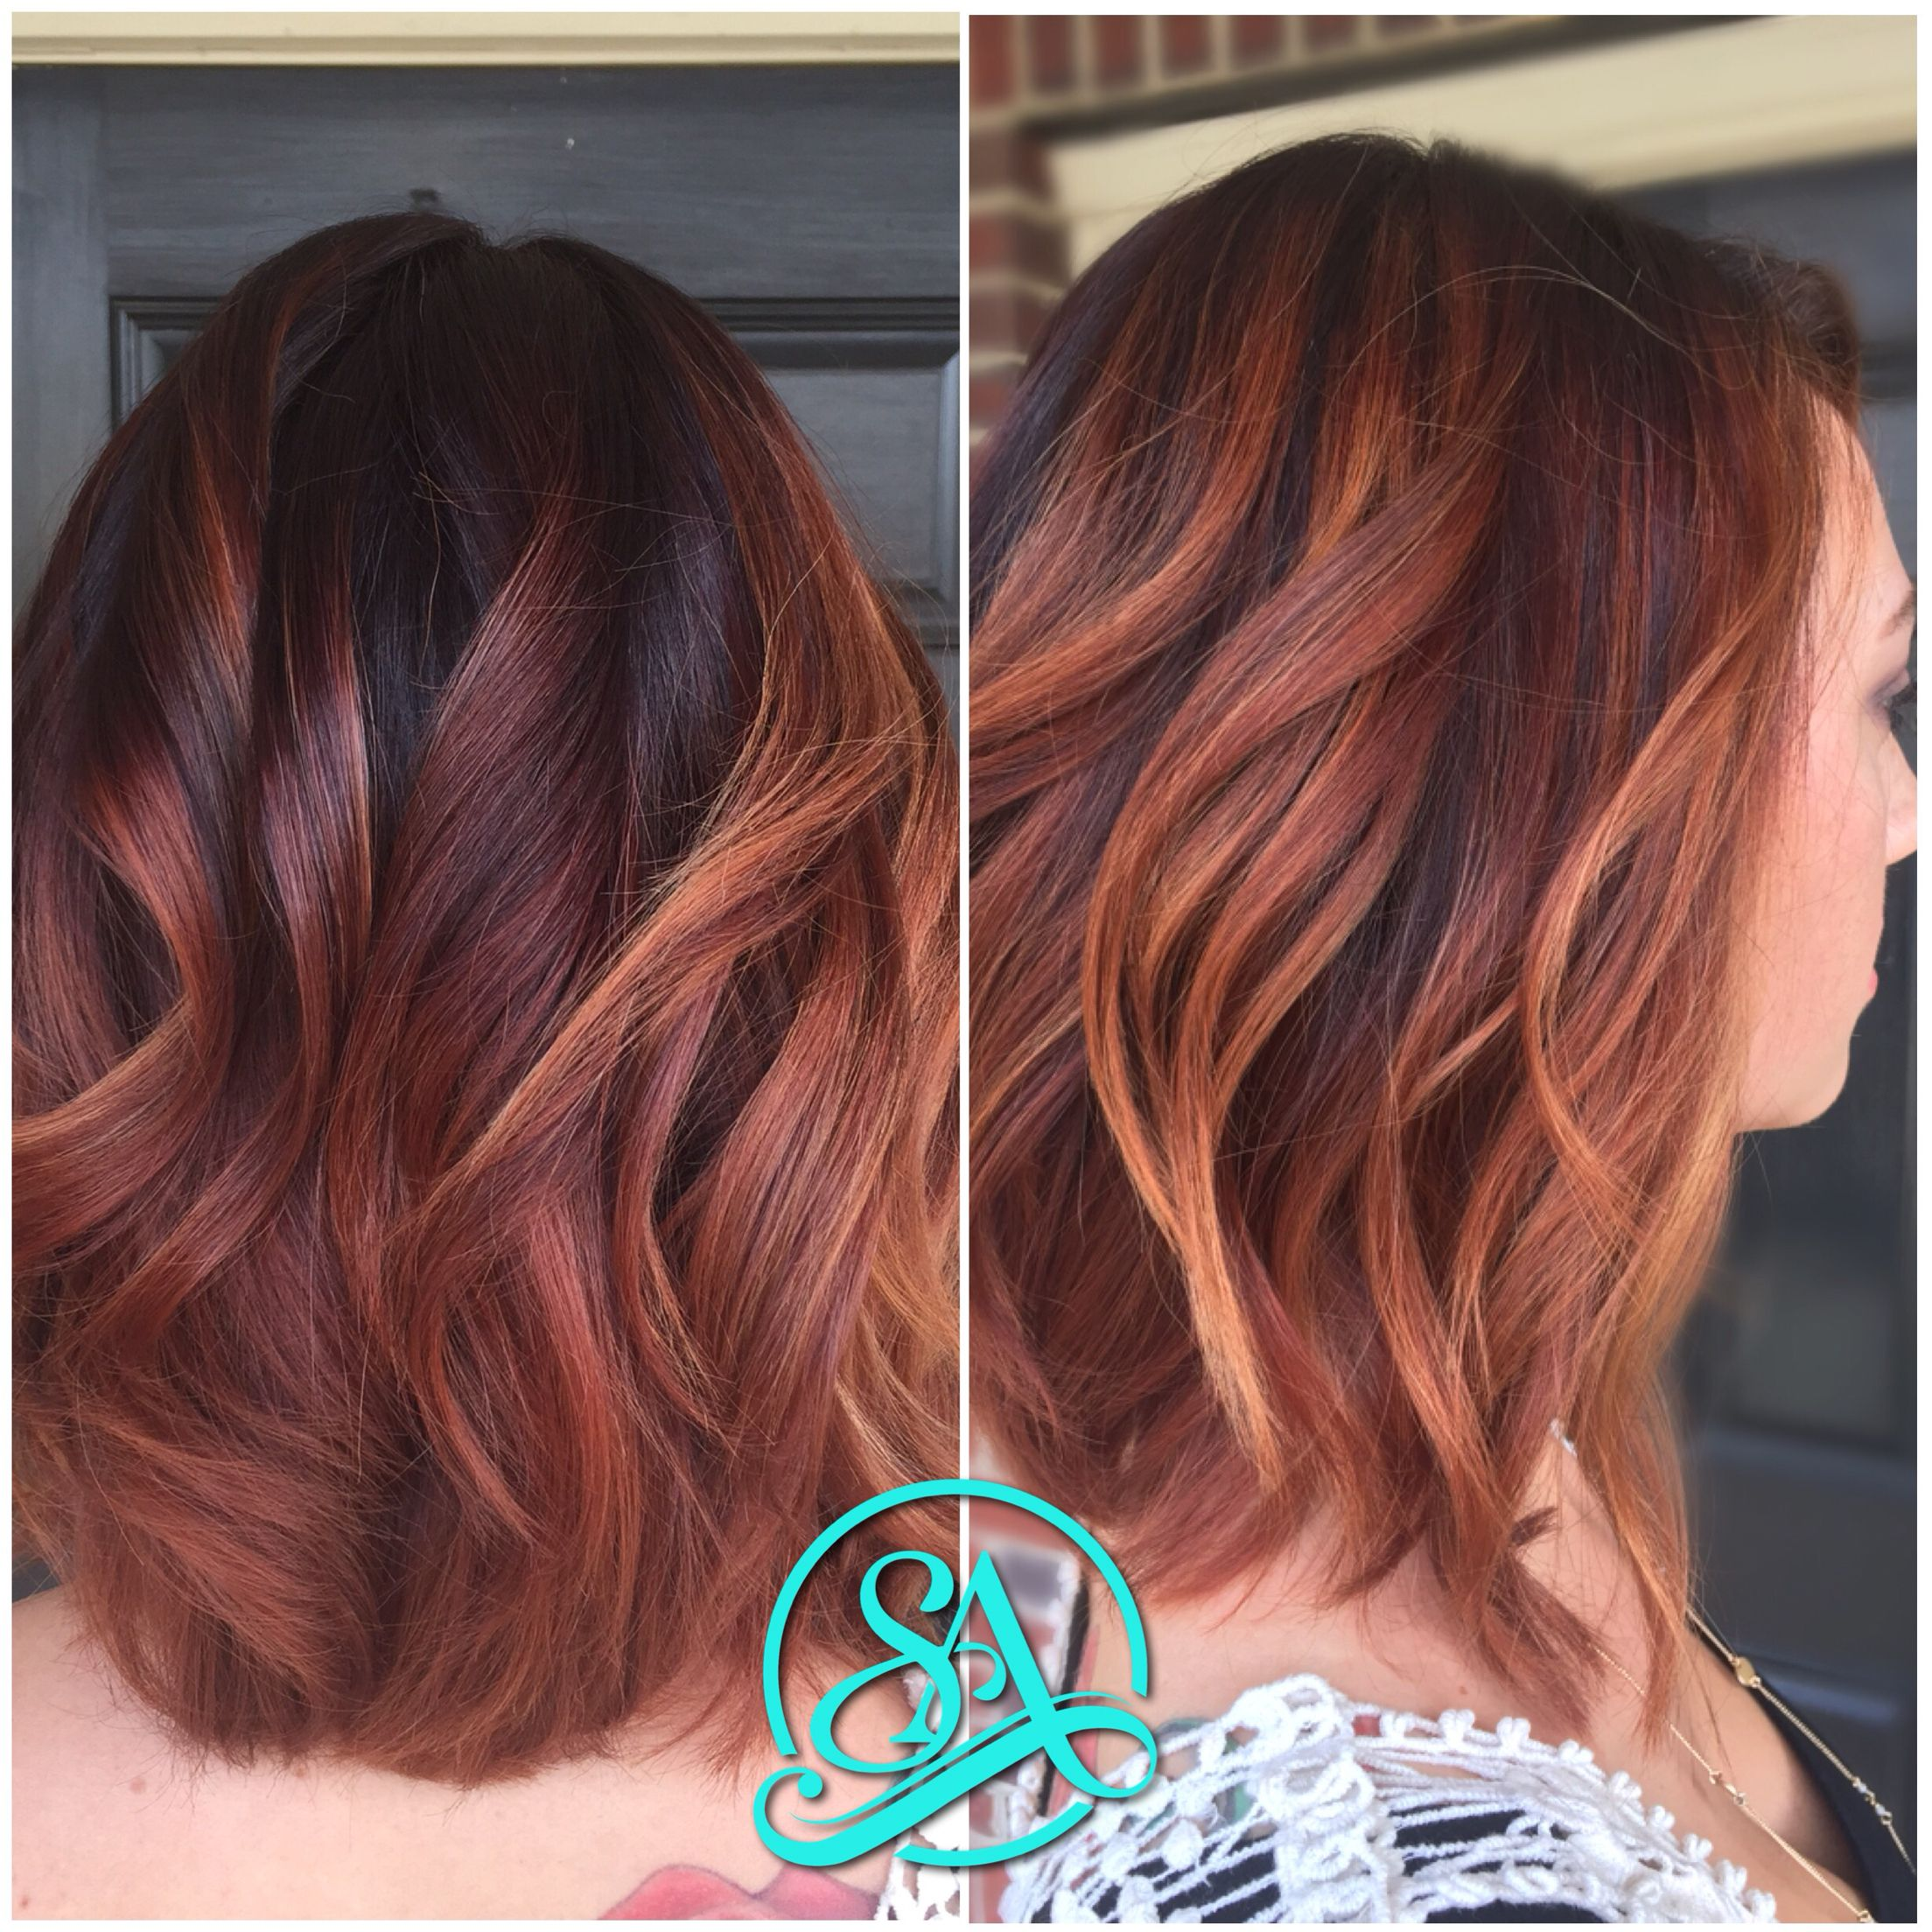 Blush Ginger Balayage Short hair balayage on dark hair Copper